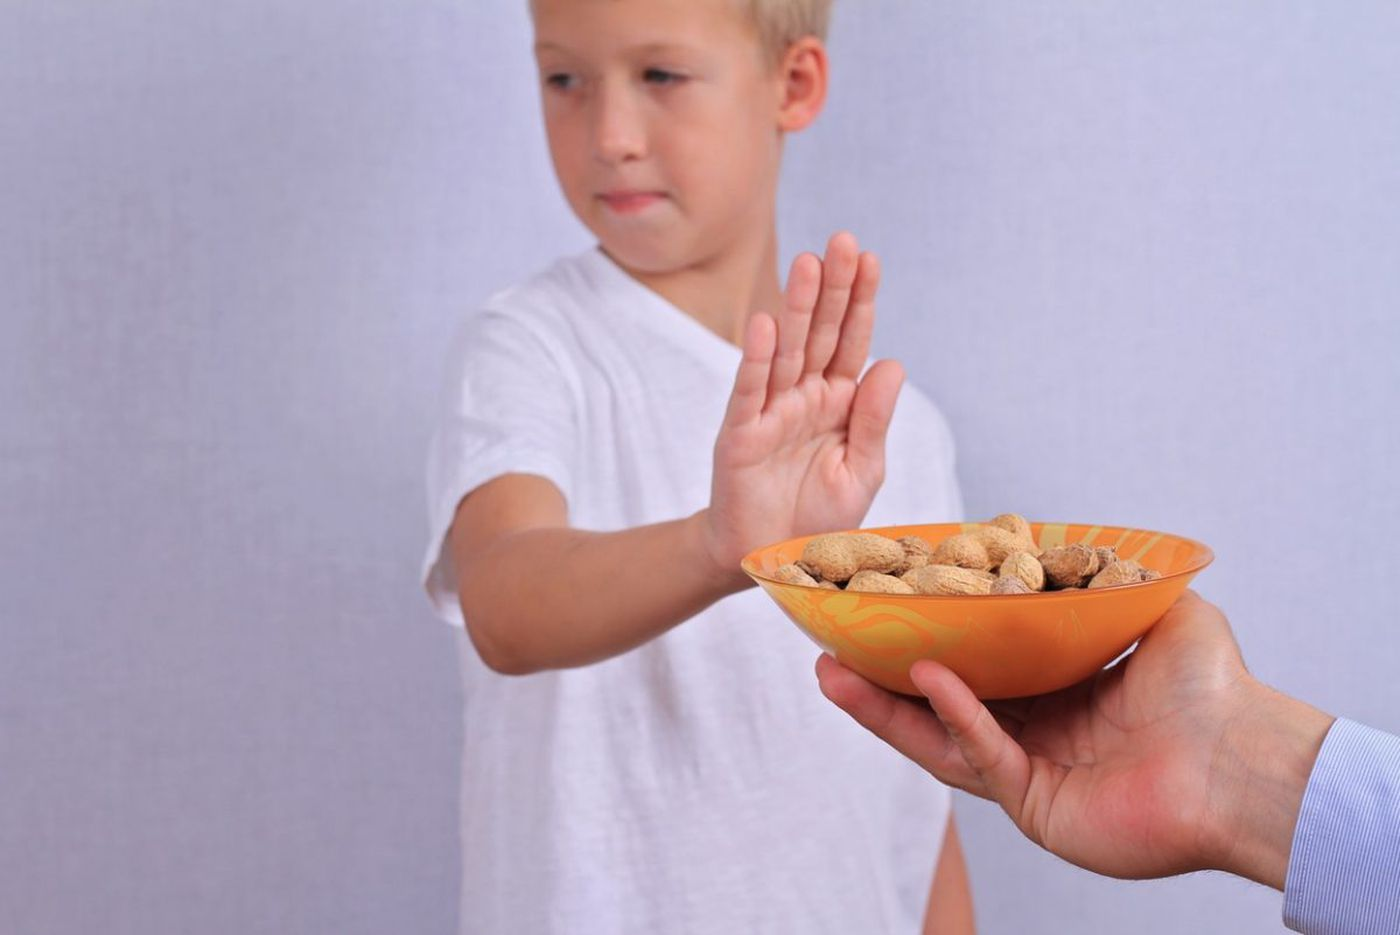 Food allergy bullying is real, and can be dangerous, pediatrician writes